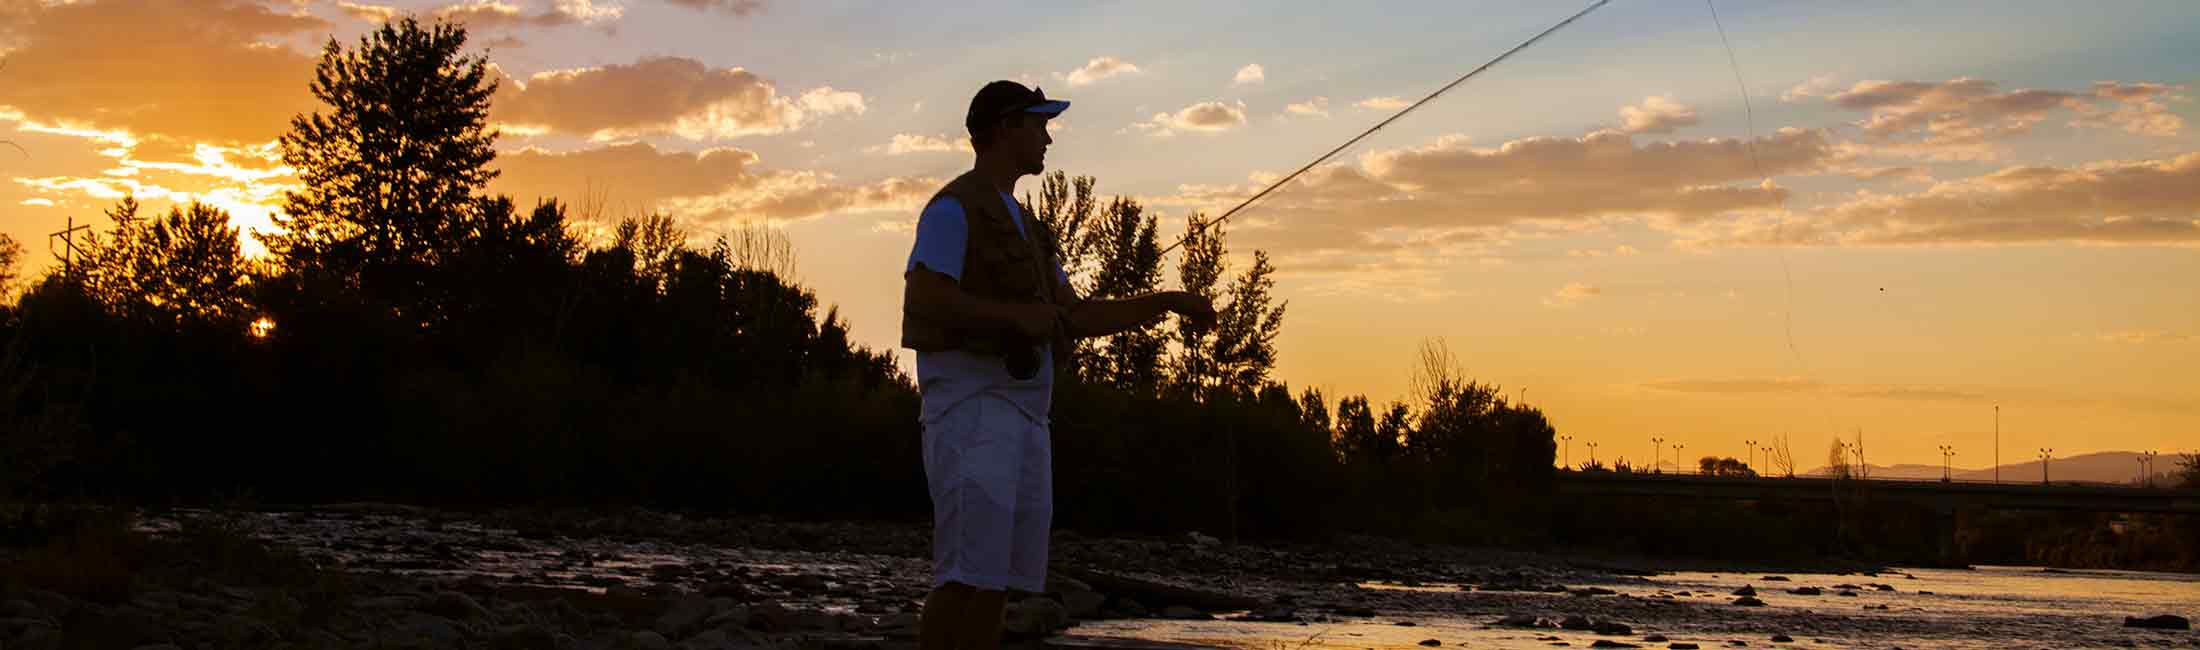 A Fisherman on the Clark Fork River during sunset